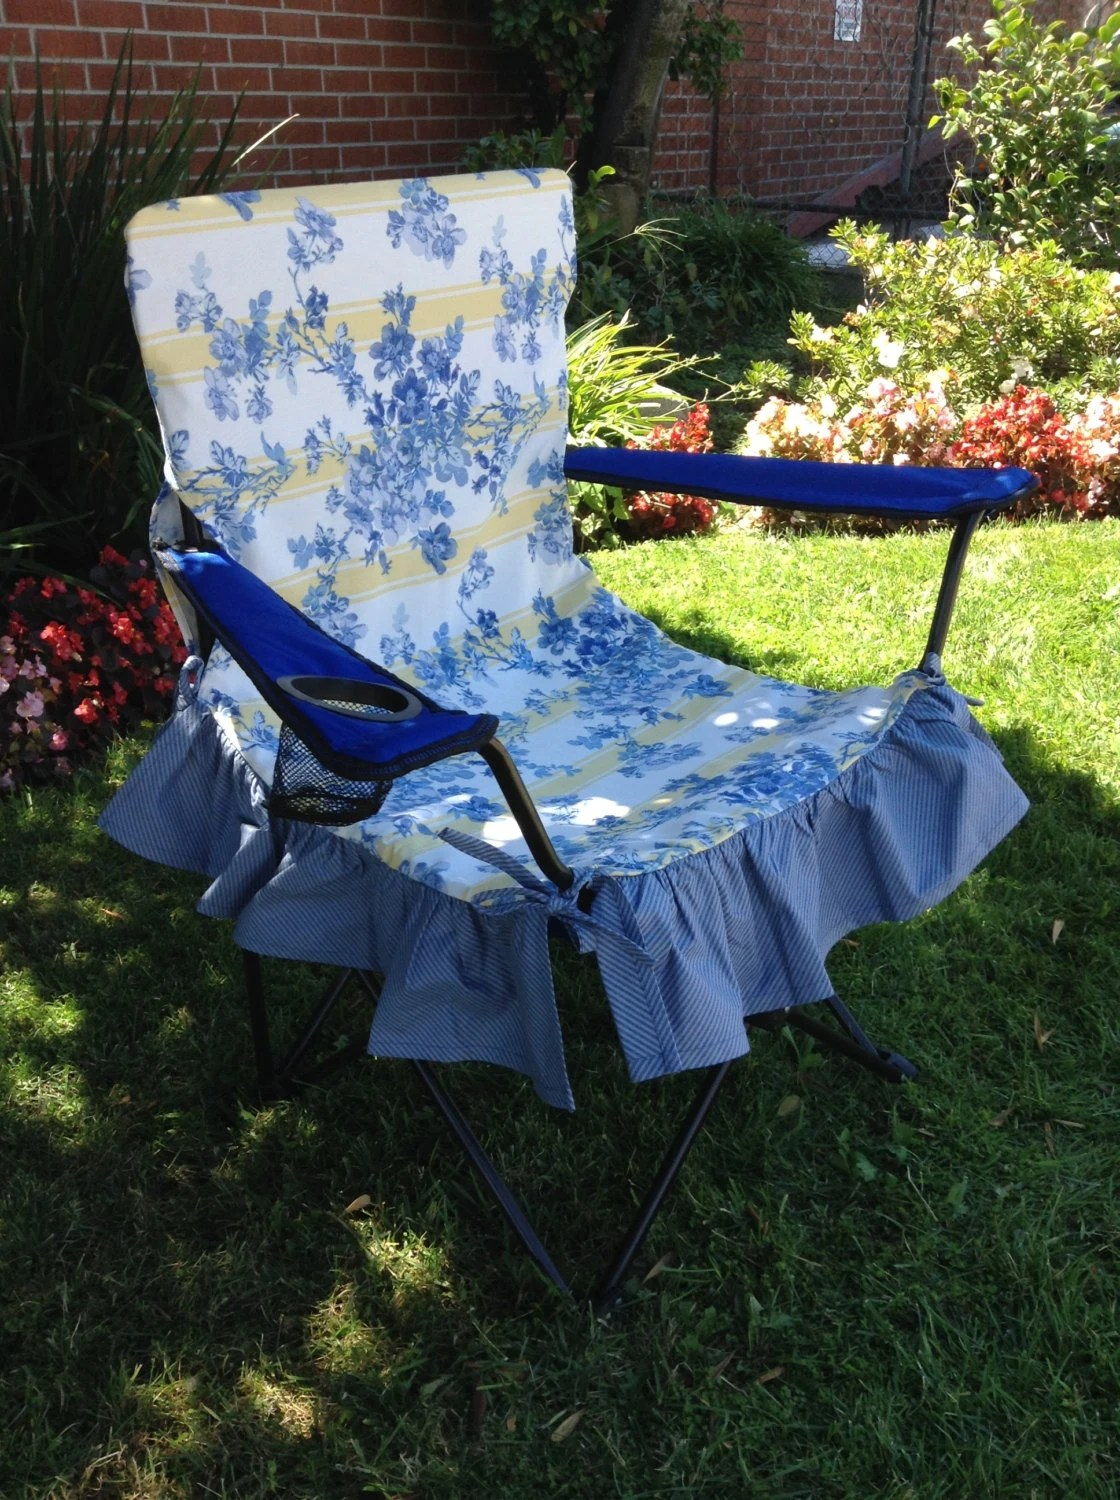 blue folding chair covers wooden church chairs uk and yellow print glamping cover glamorous camping